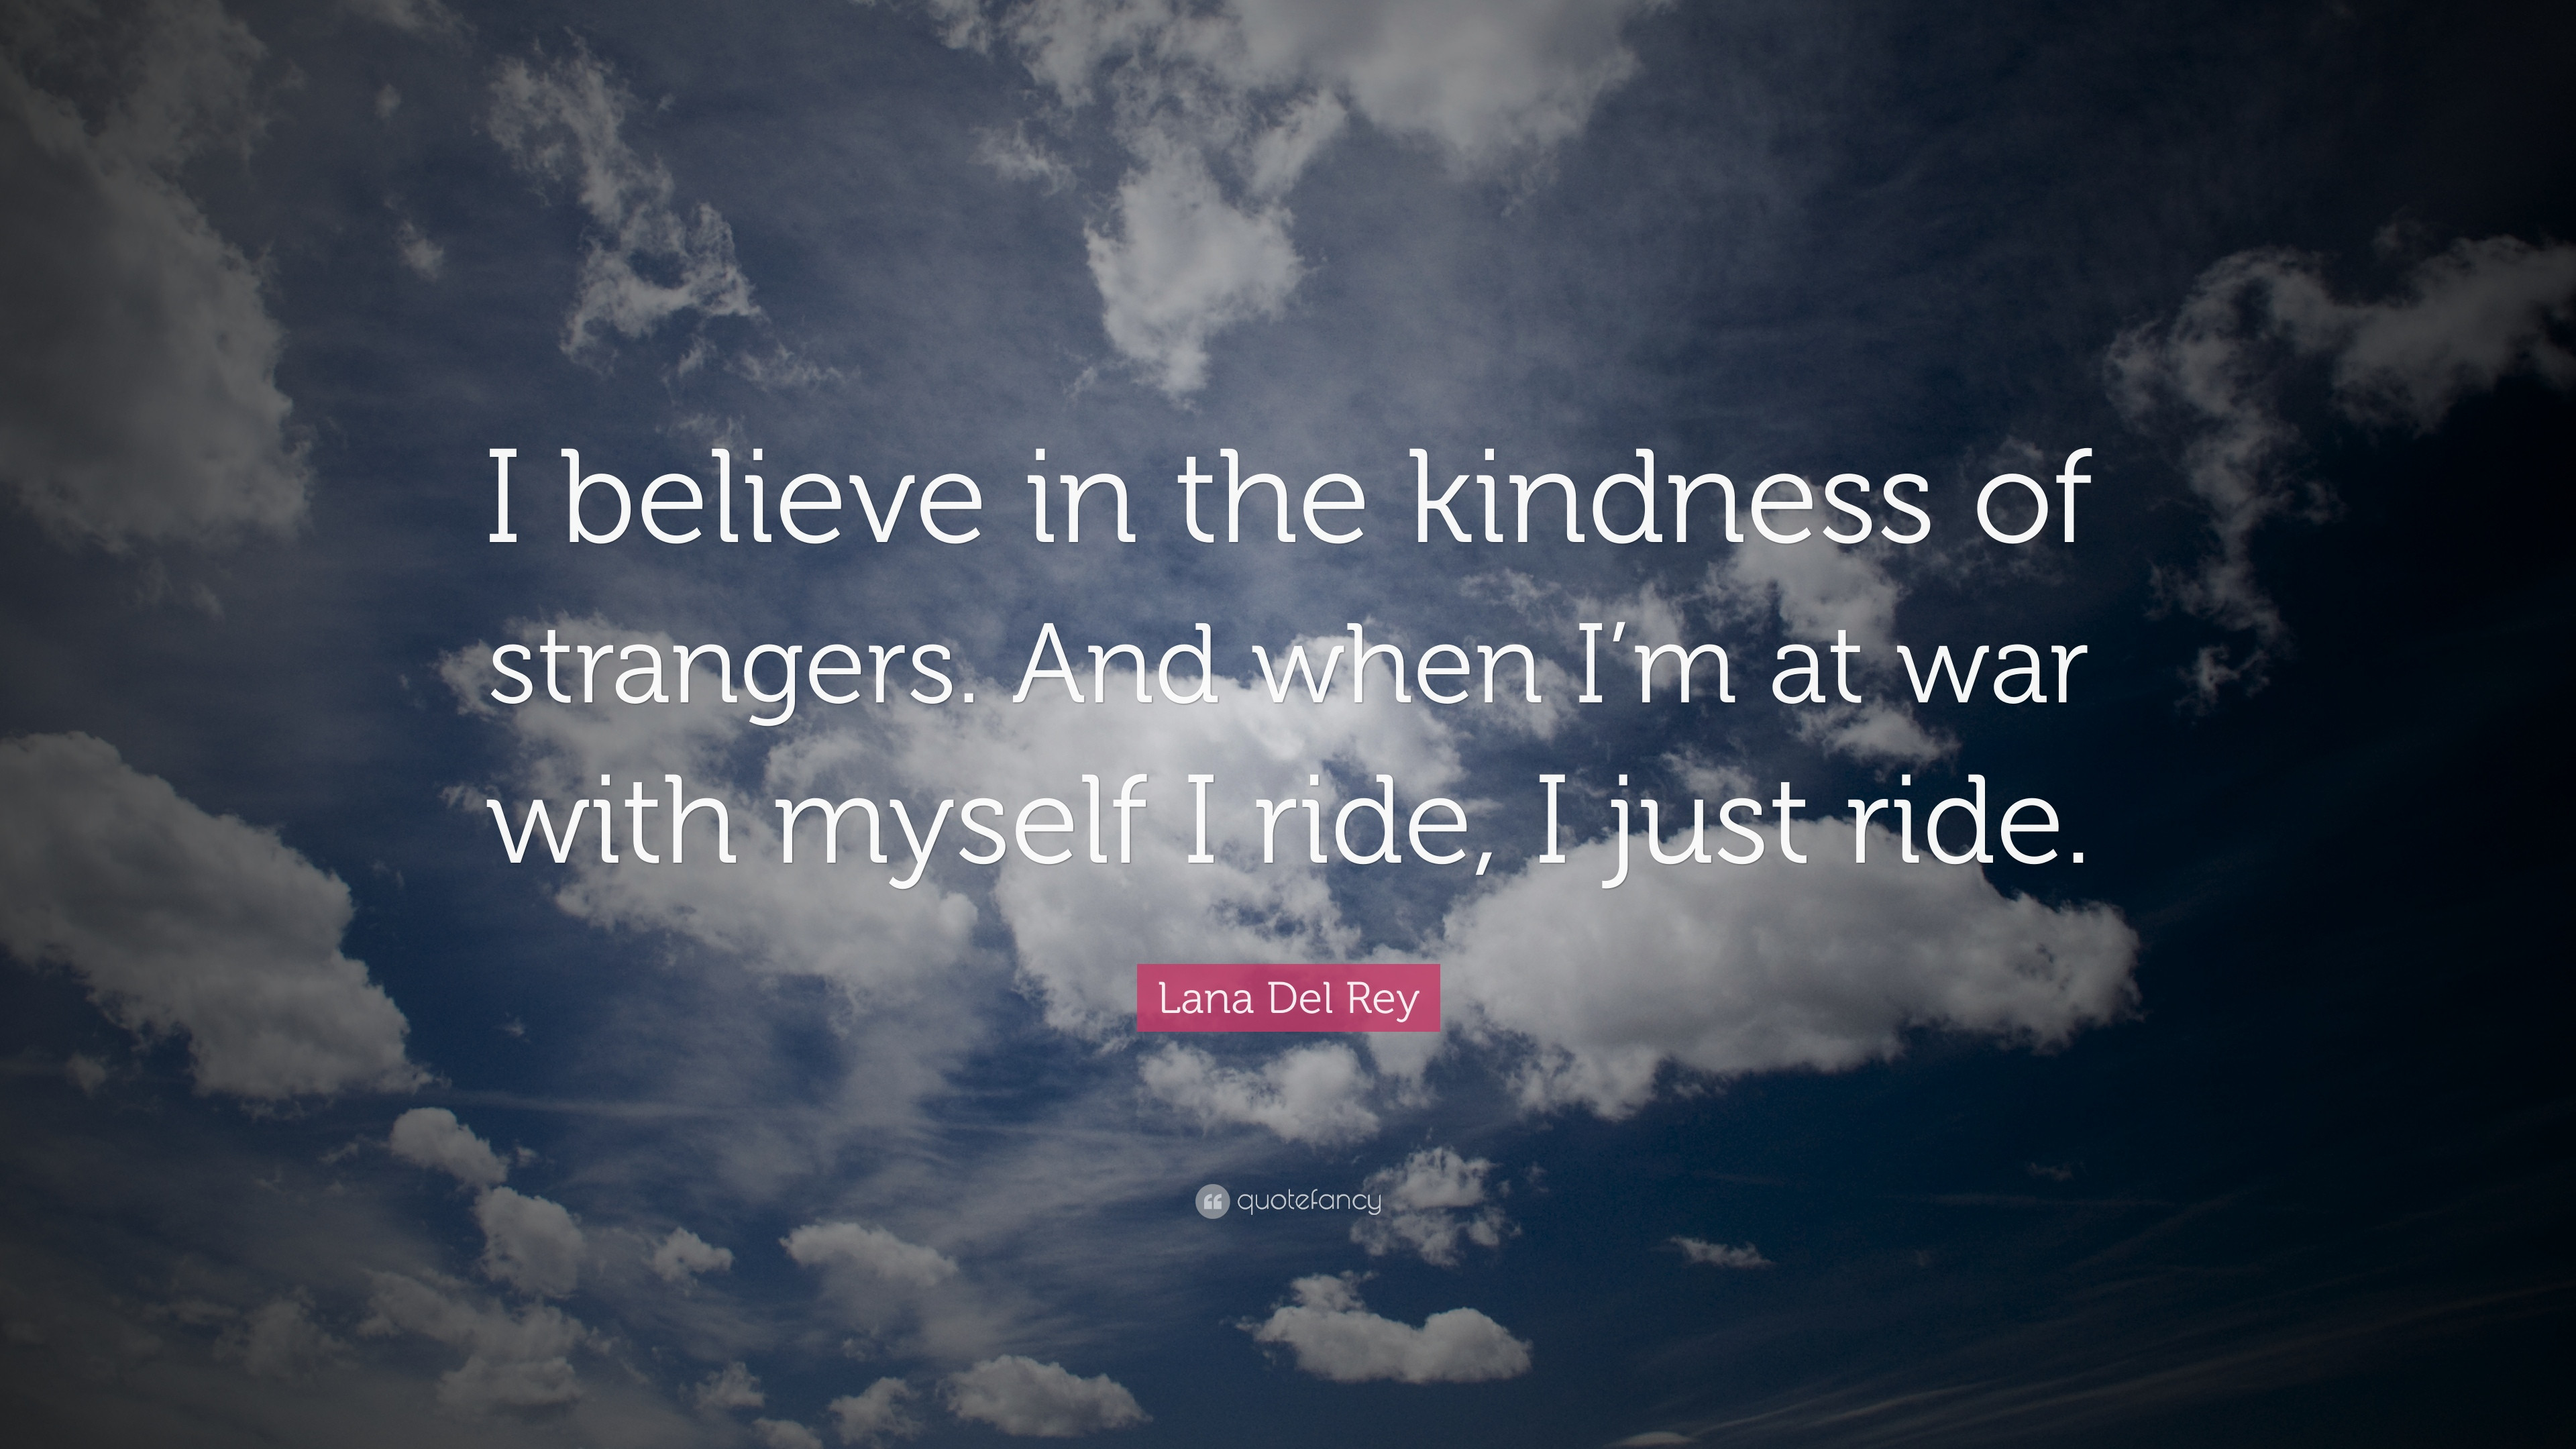 The Kindness Of Strangers Quote  Kindness Quotes 40 wallpapers Quotefancy